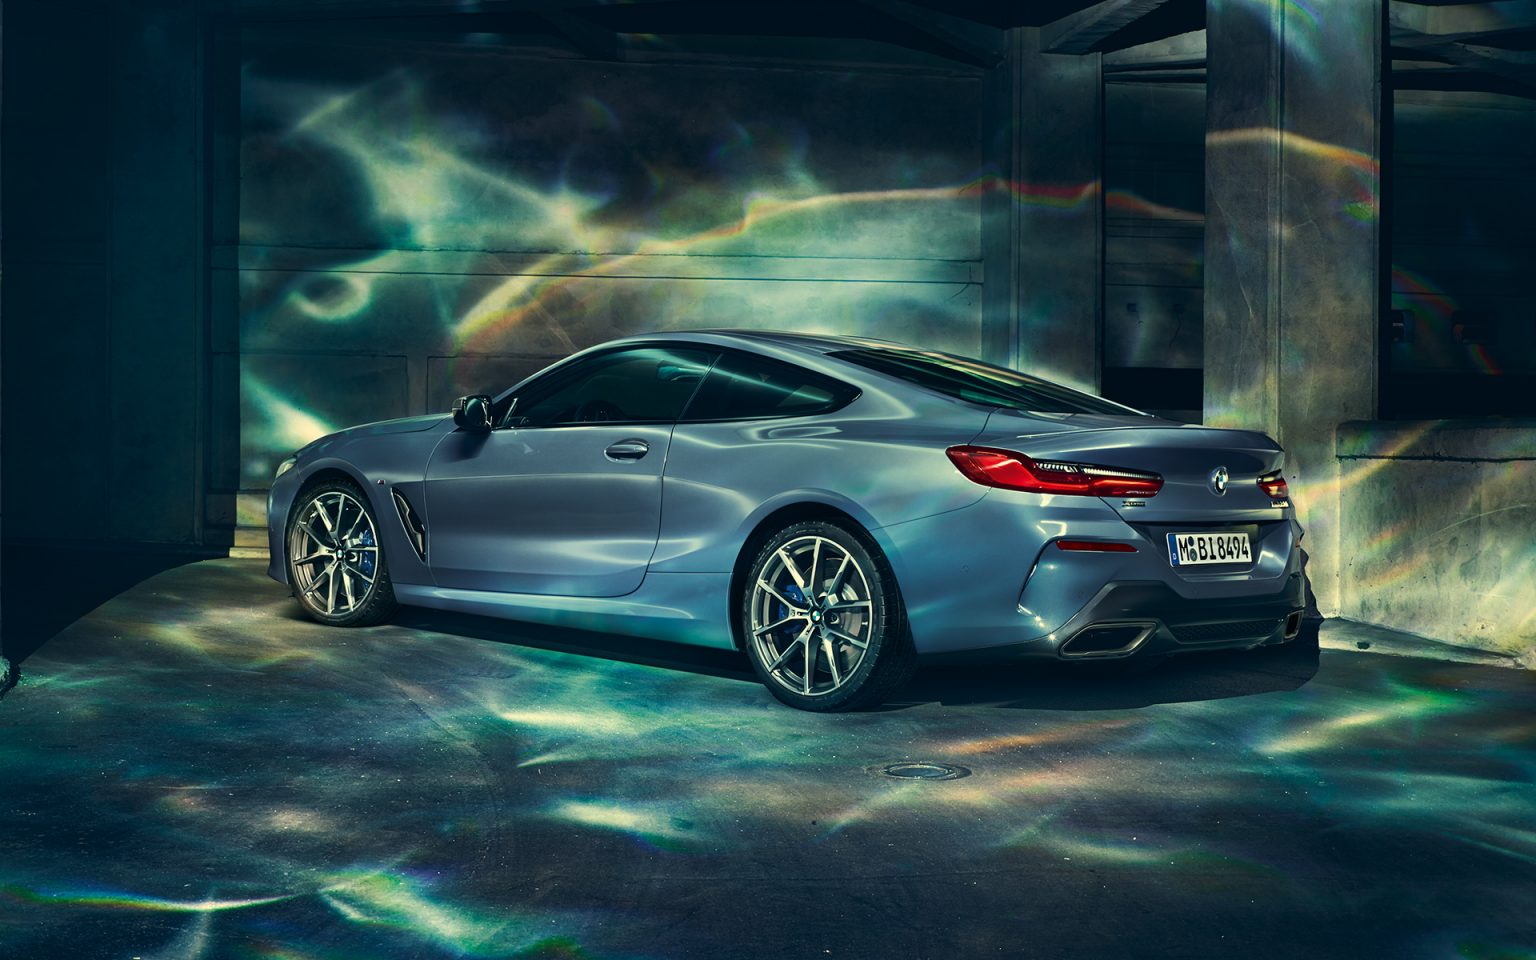 bmw-8series-coupe-gallery-wallpaper-03.jpg.asset.1527577199065